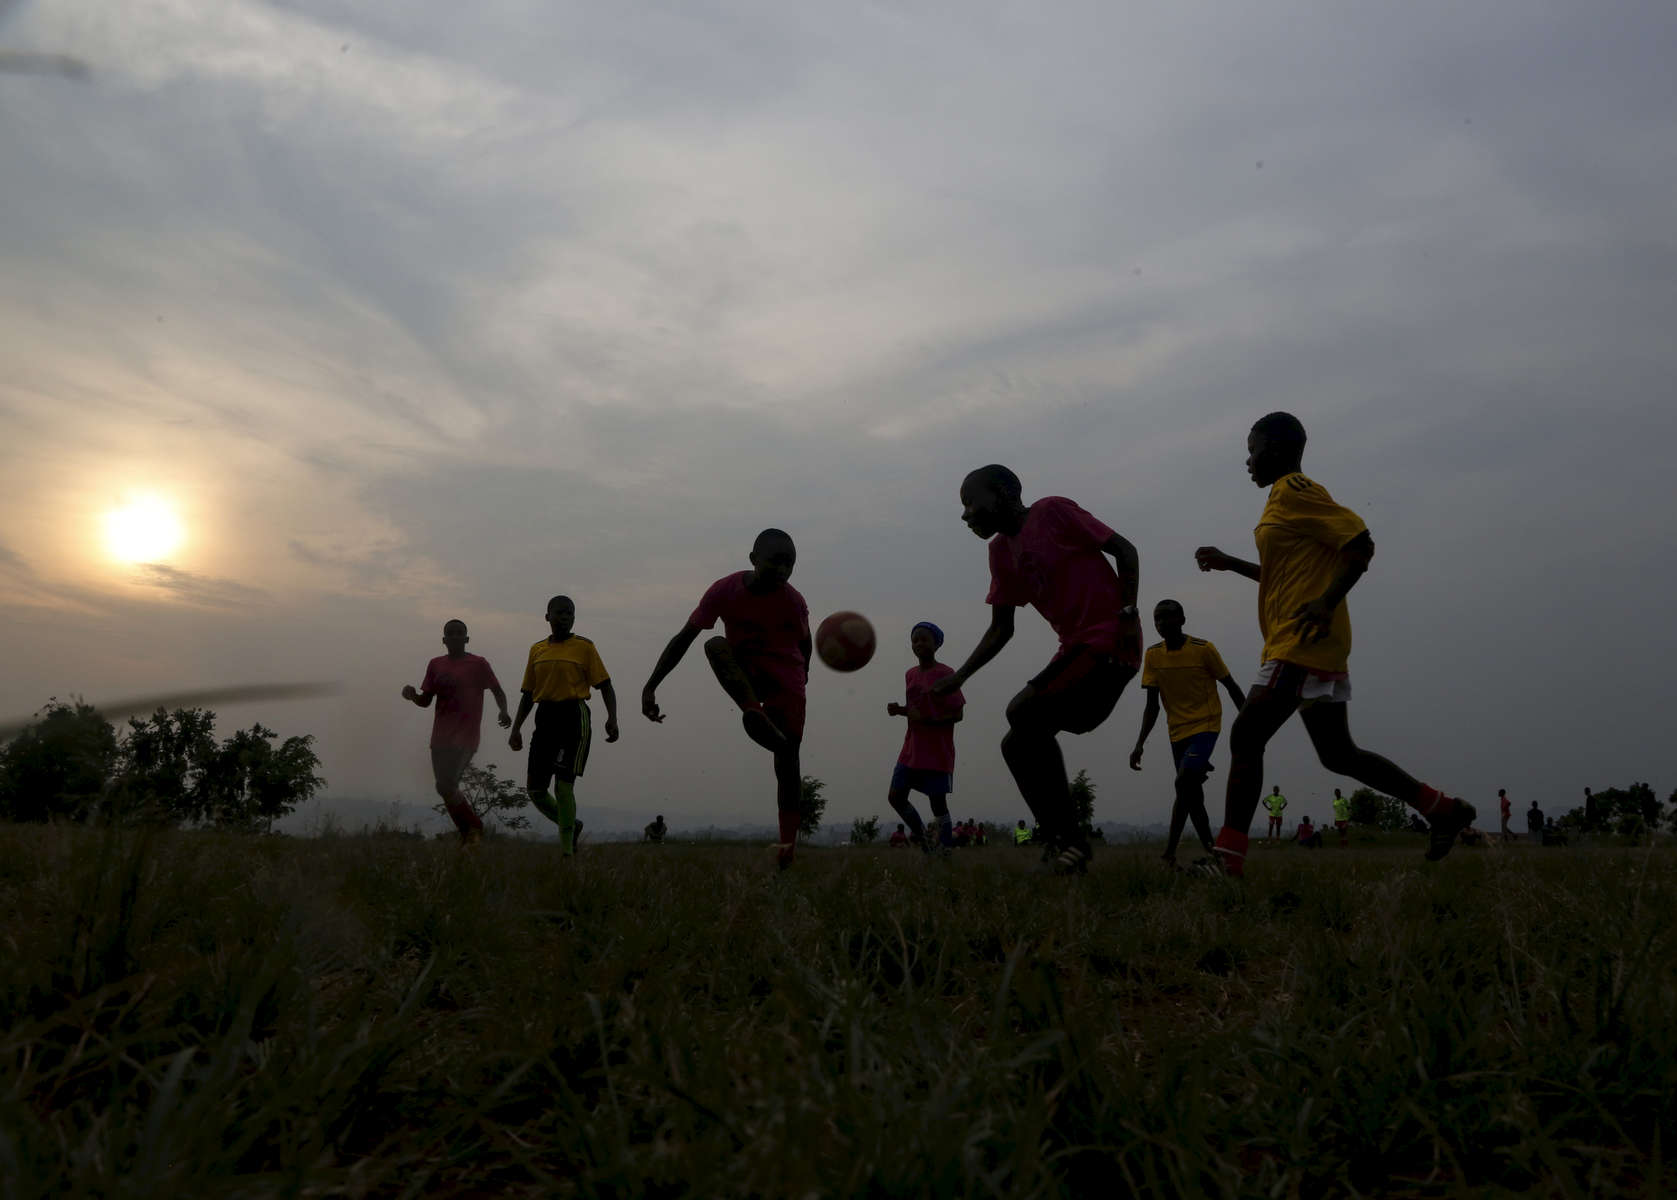 Congolese refugee girls play soccer in Kampala, Uganda on December 10, 2018.